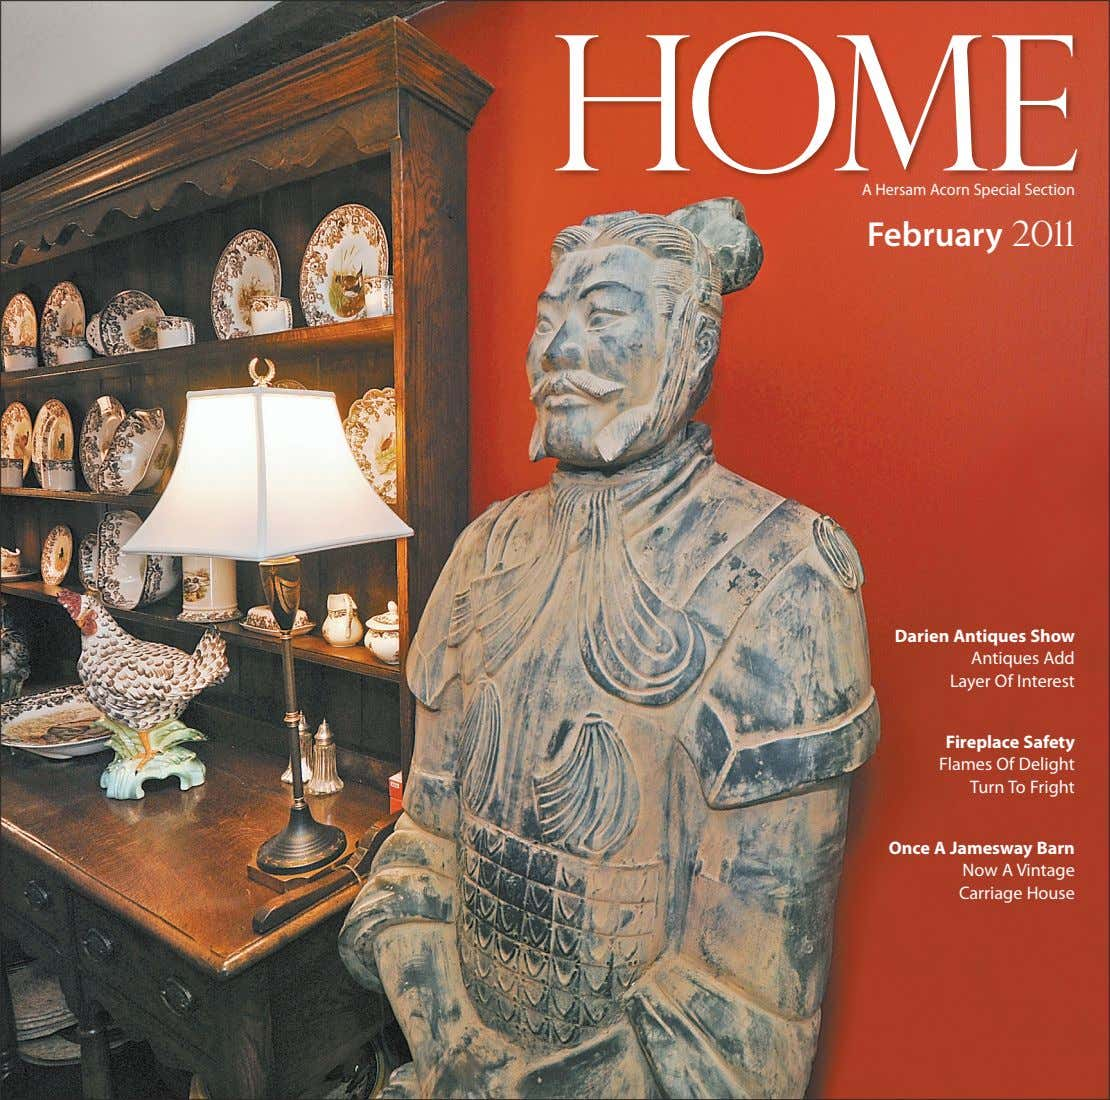 HOME A Hersam Acorn Special Section February 2011 Darien Antiques Show Antiques Add Layer Of